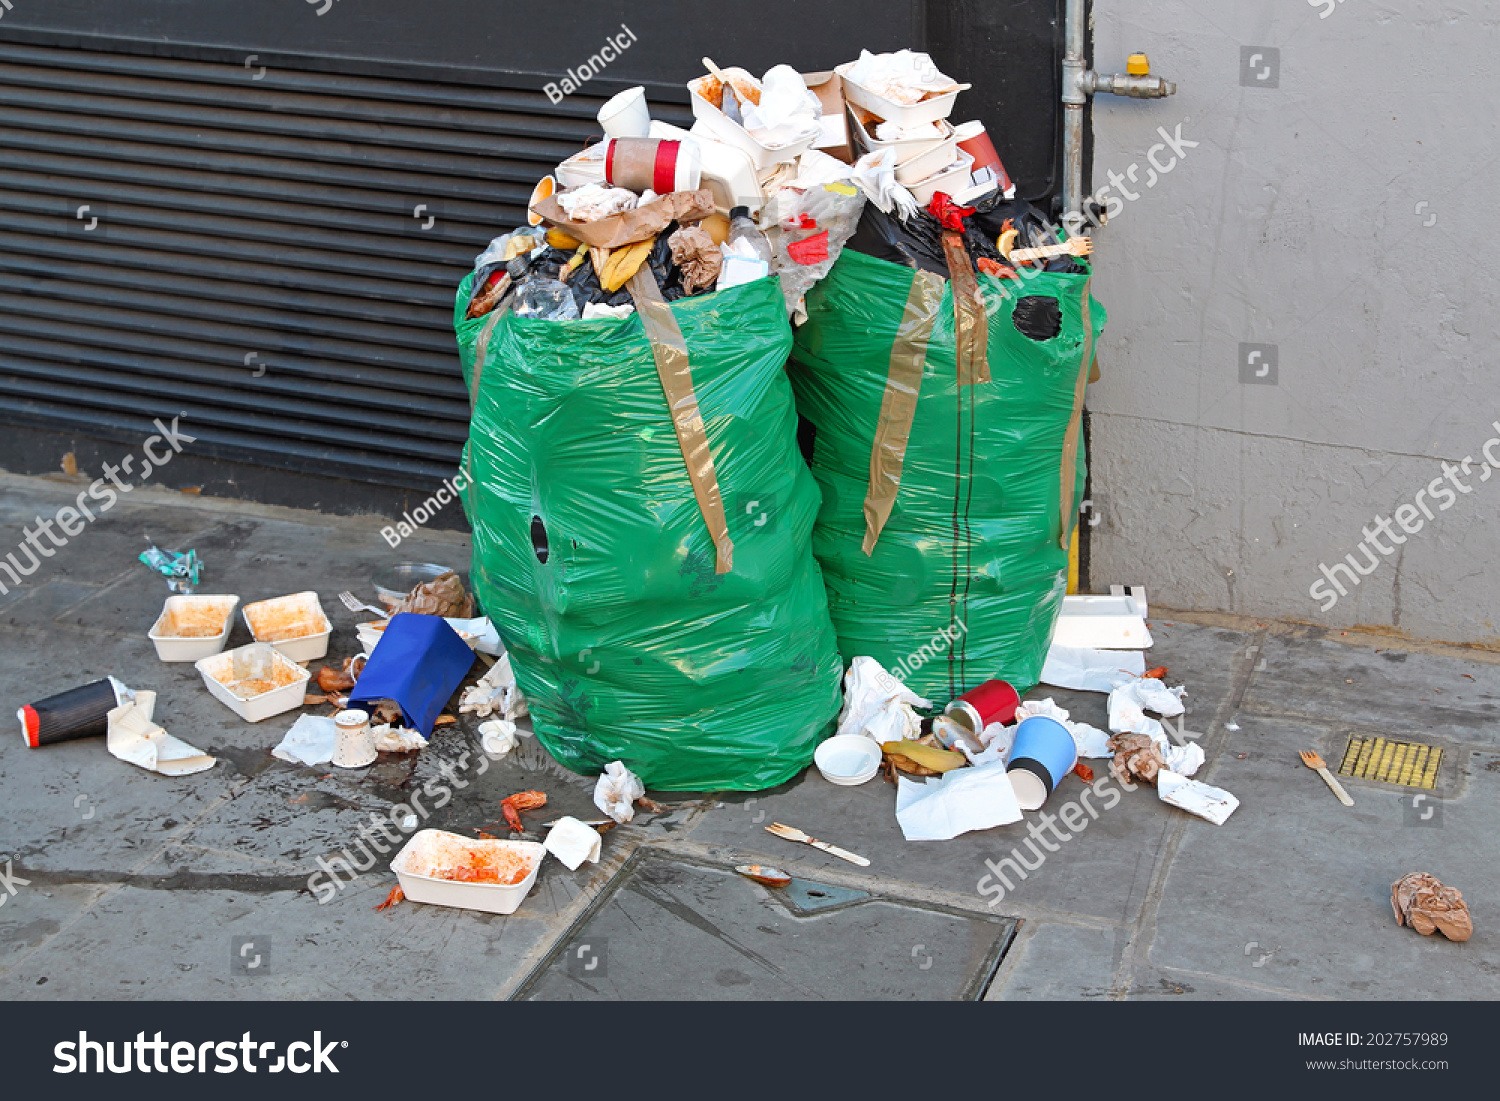 Improperly Disposed Bags Of Litter Waste Stock Photo 202757989 : Shutterstock